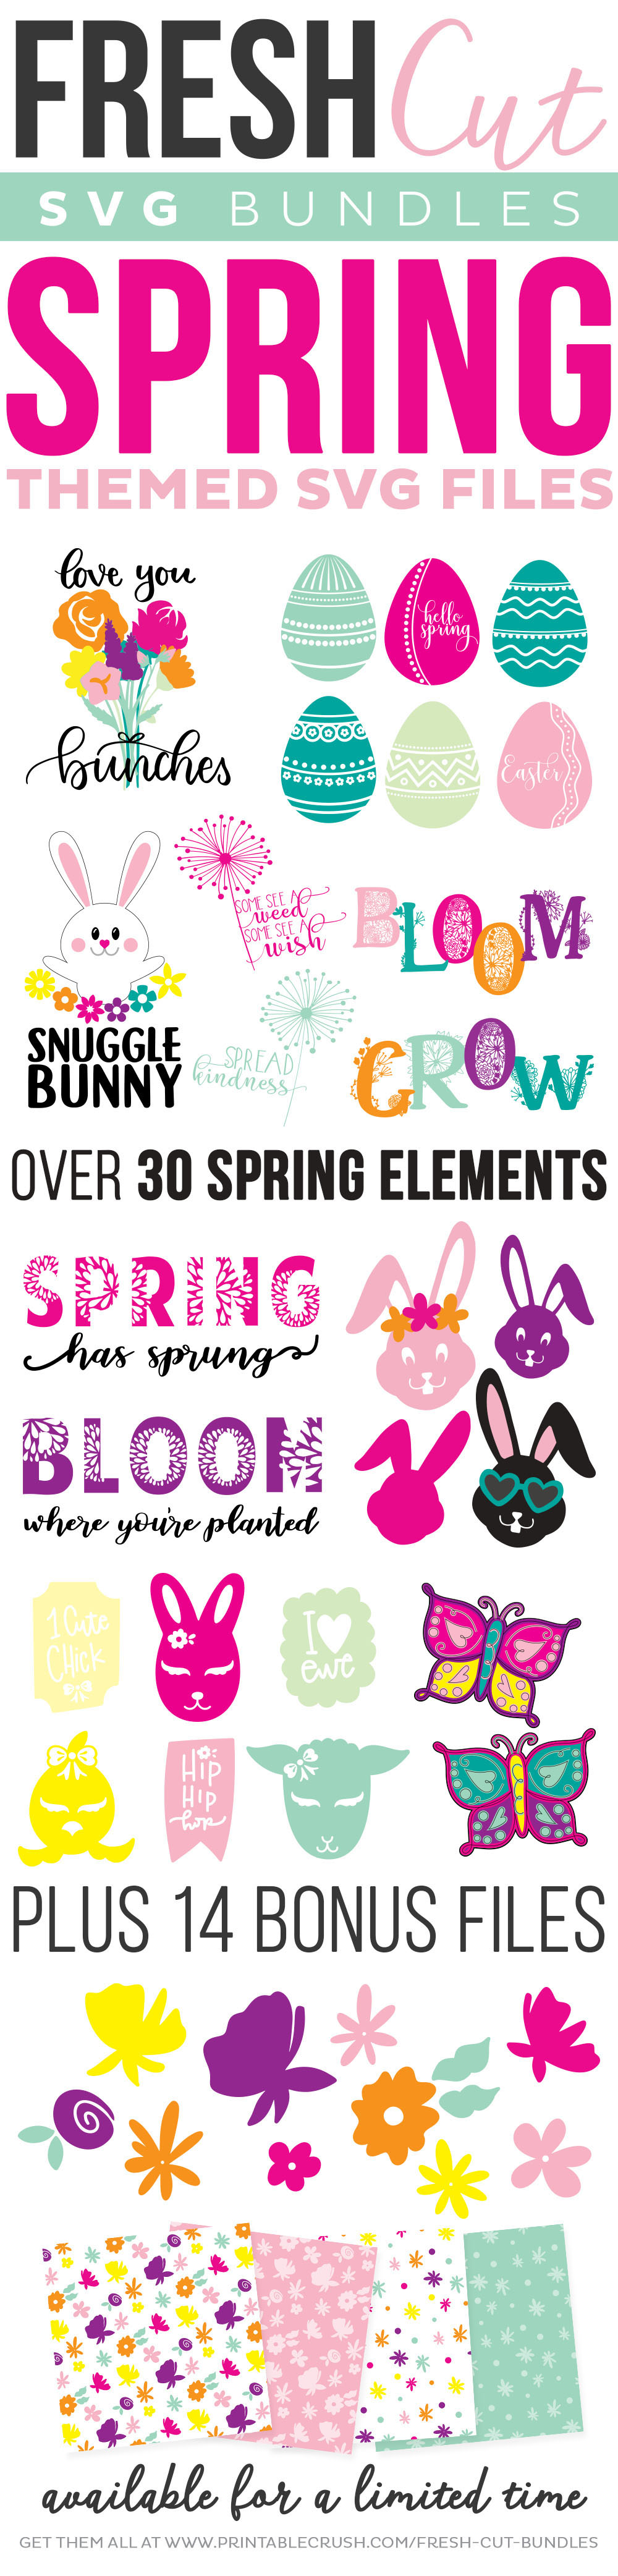 Spring Fresh Cut SVG Bundle long pin collage